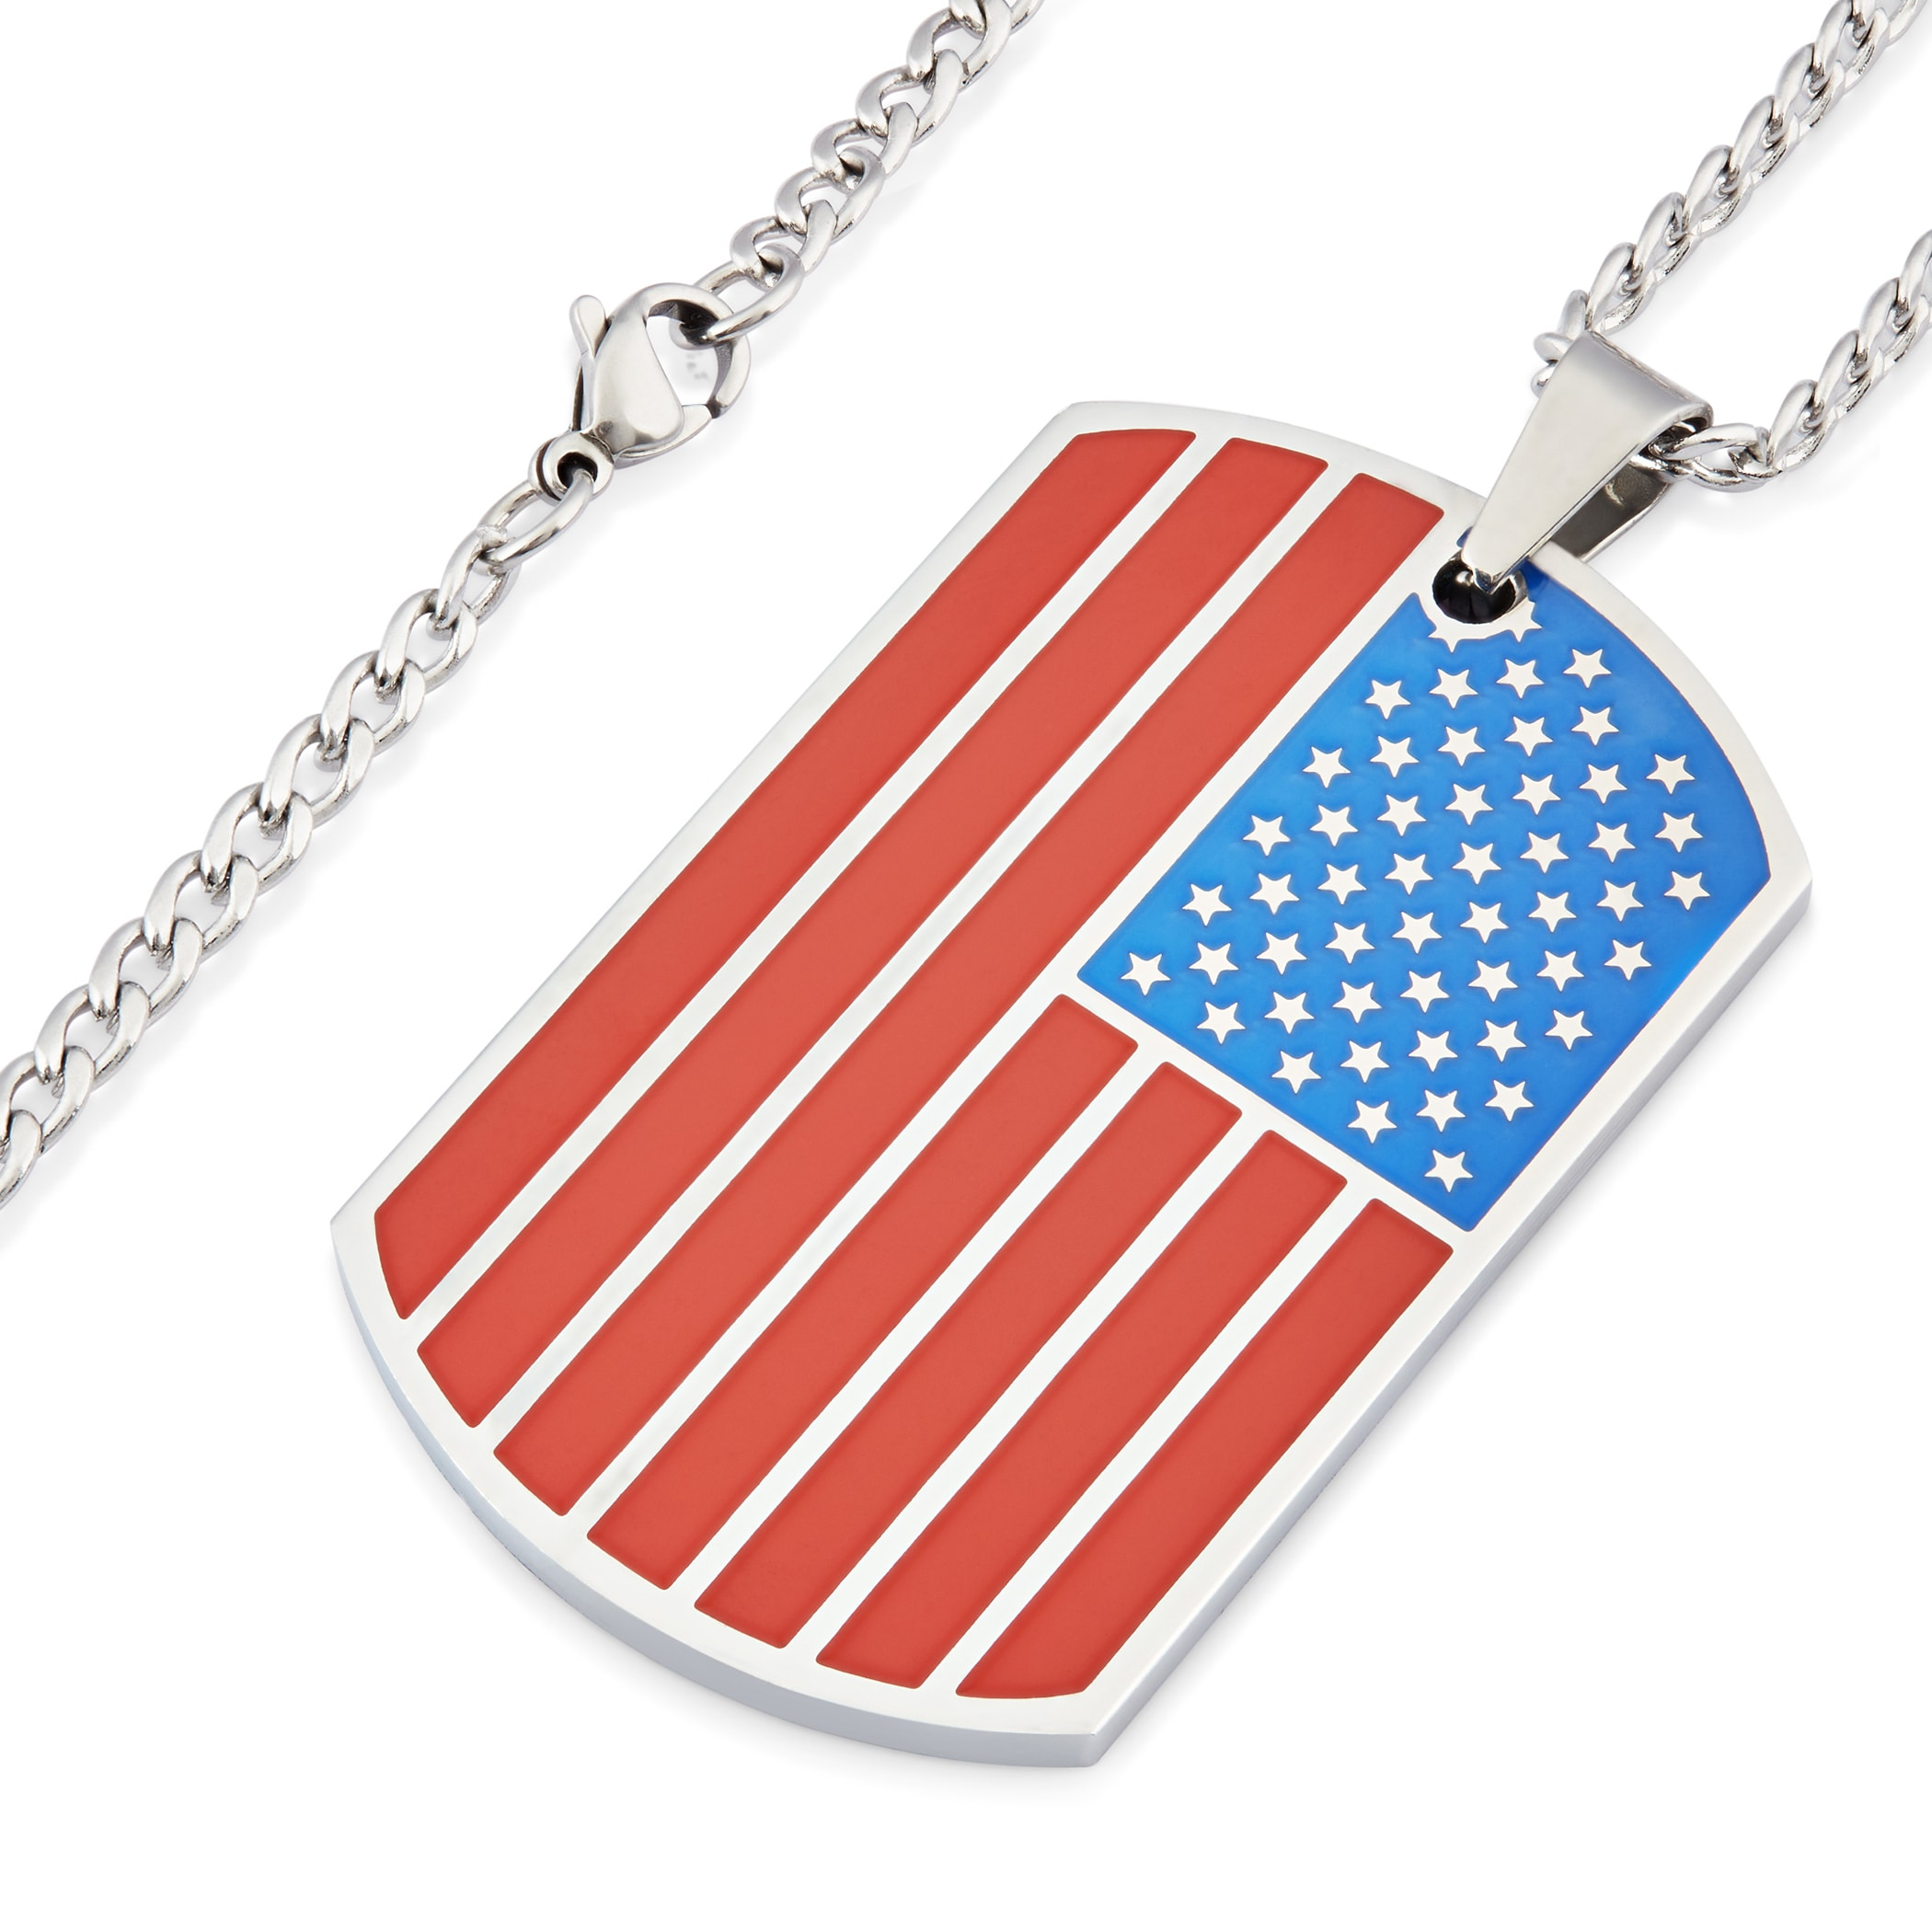 patriotic pride necklace silver bracelet transformation or luxury products american gold usa asset in steel surgical flag